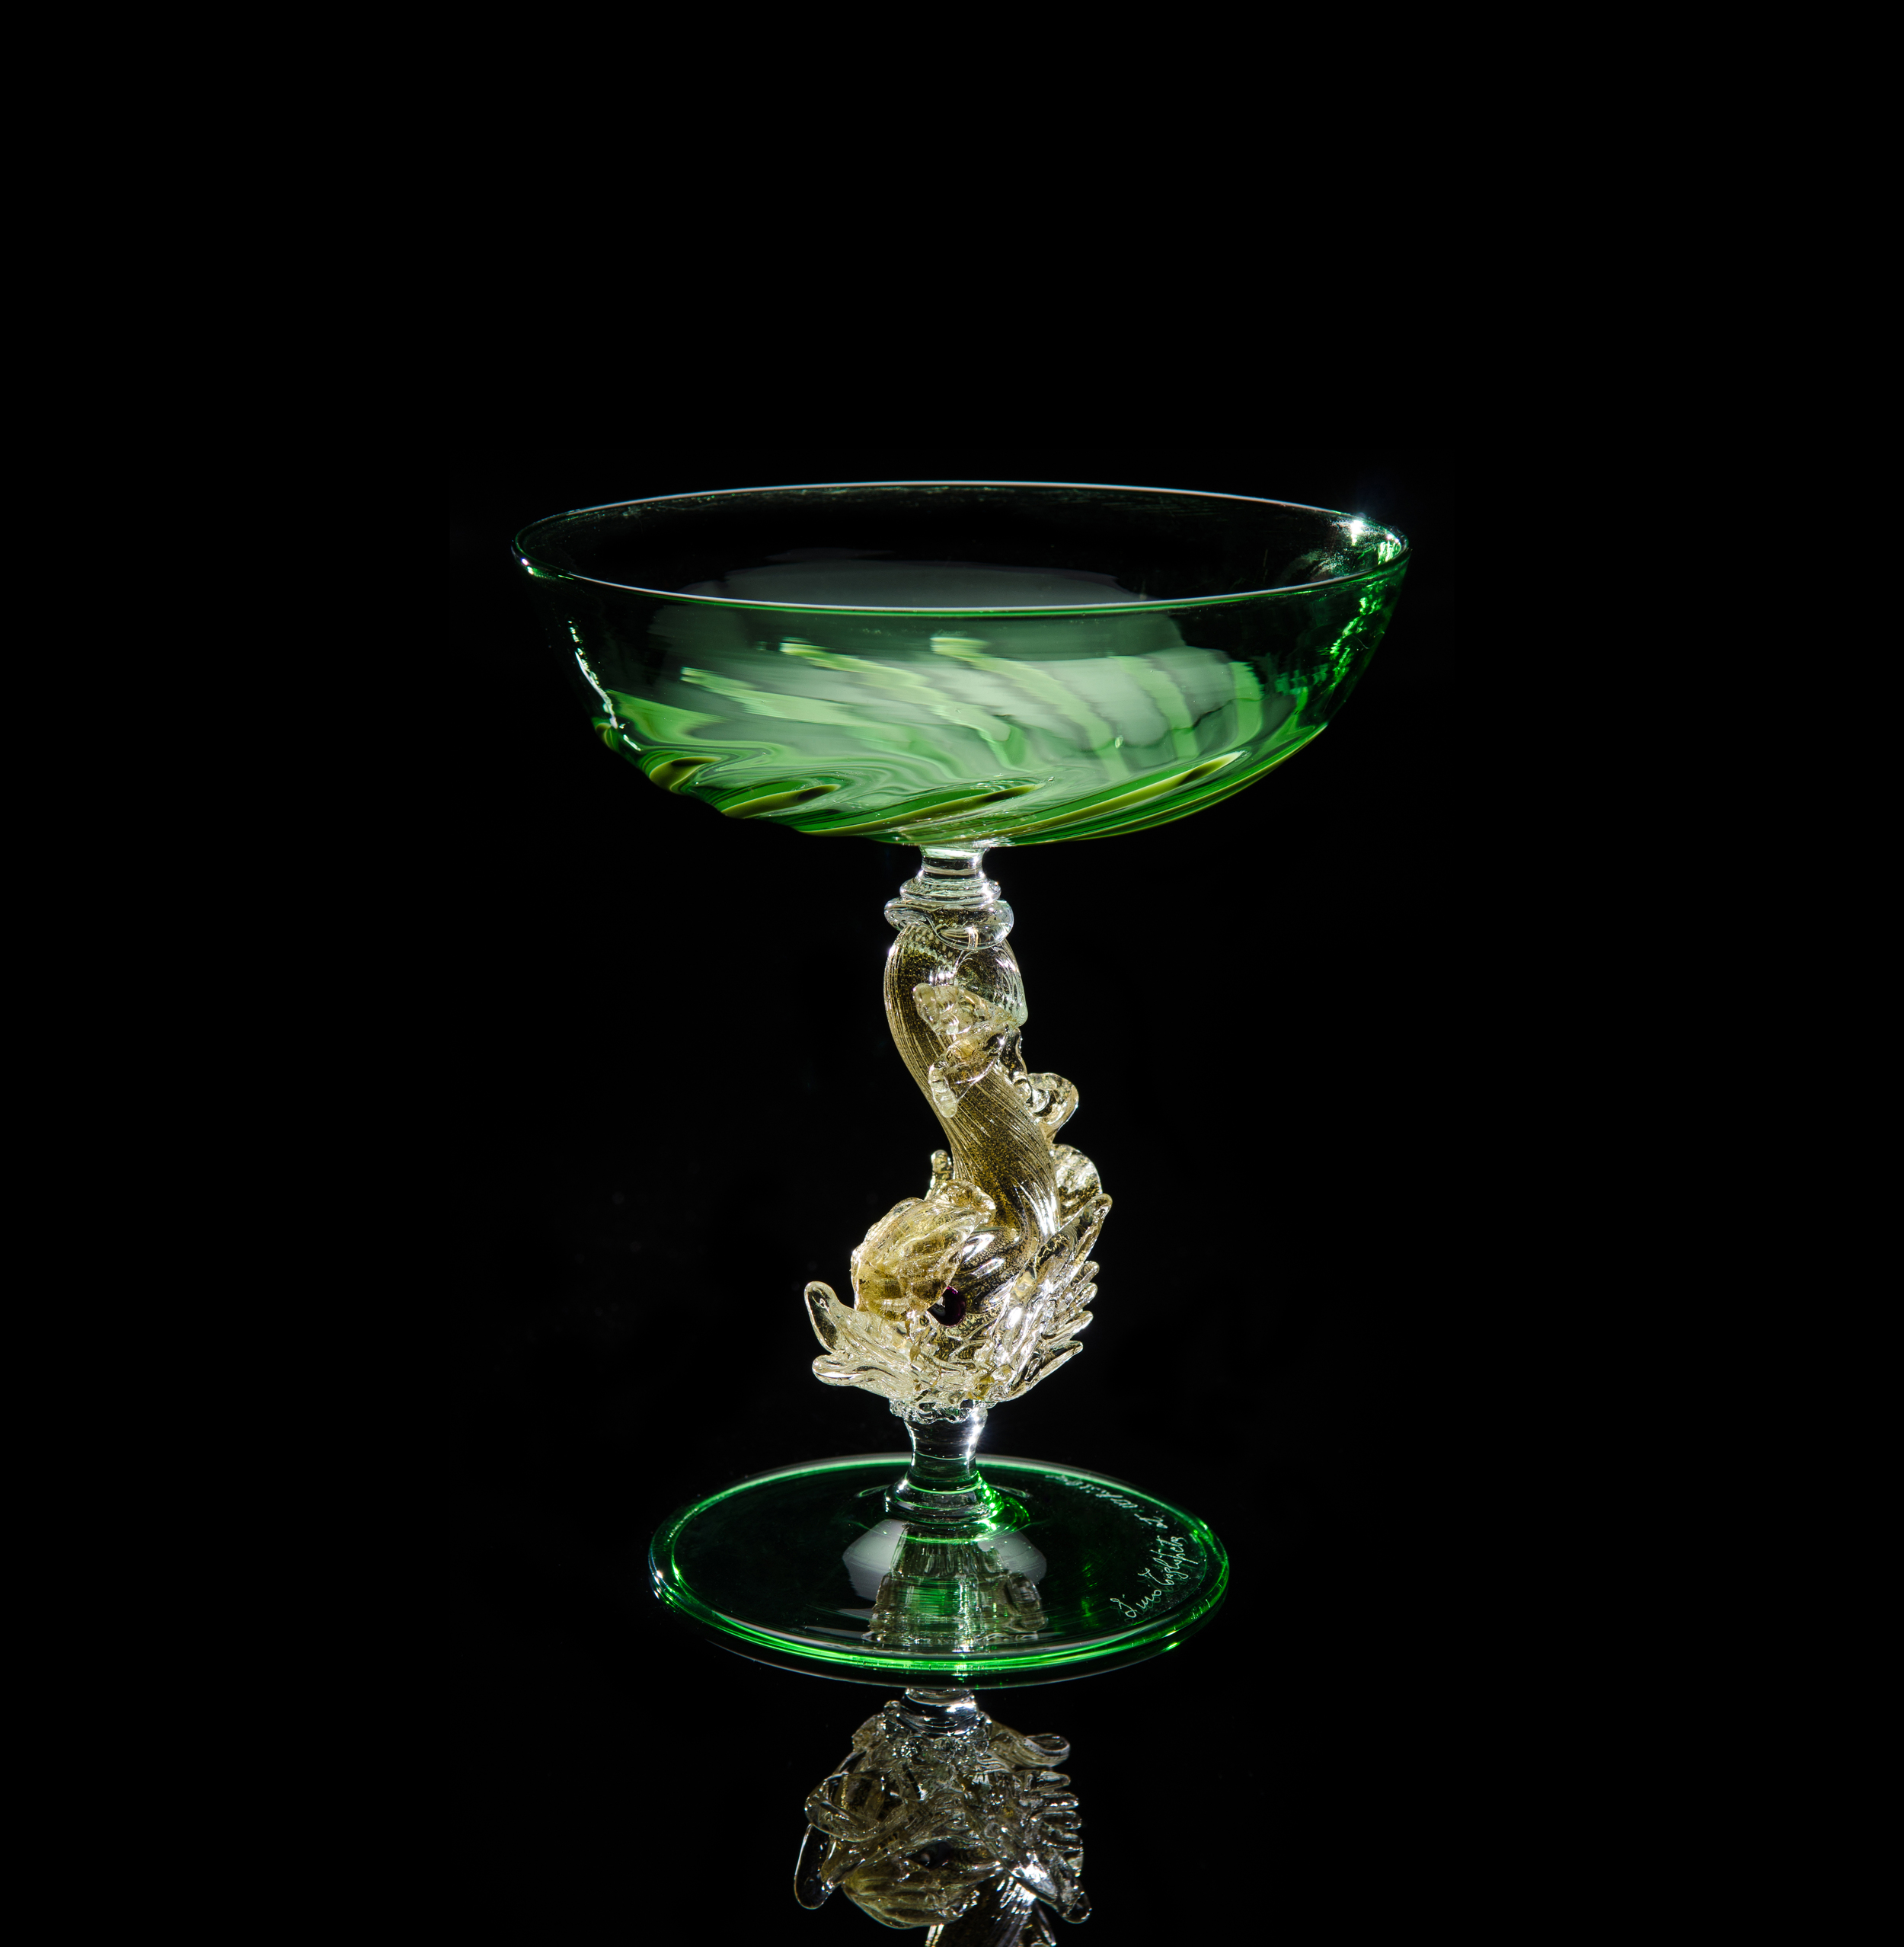 Lino Tagliapietra,  Goblet  (1991-1994, glass and gold leaf, 6 x 5 1/16 x 5 1/16 inches), LT.4